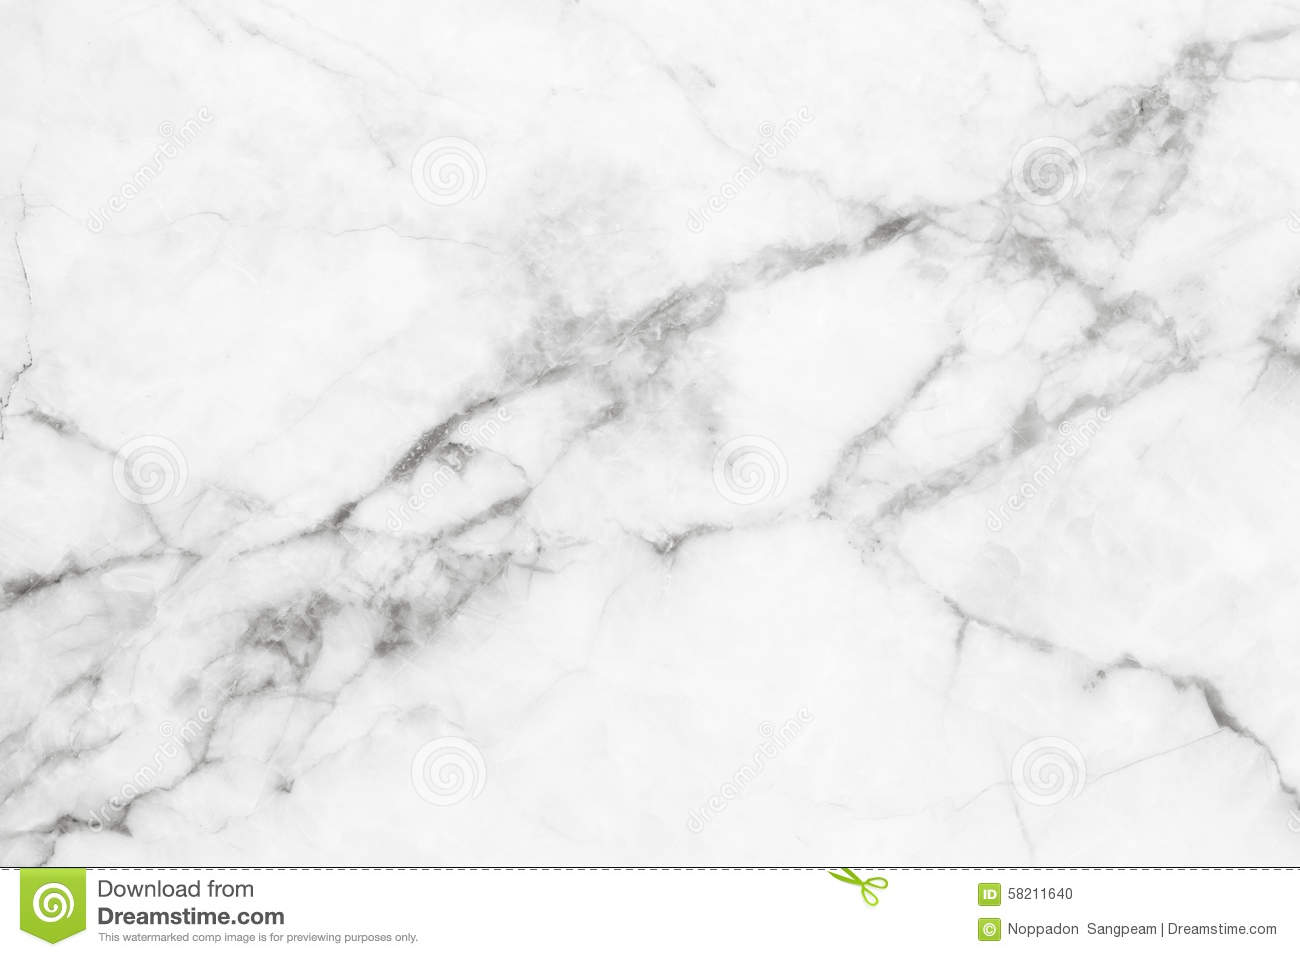 Structure Of Marble In Natural Patterned For Background And Design